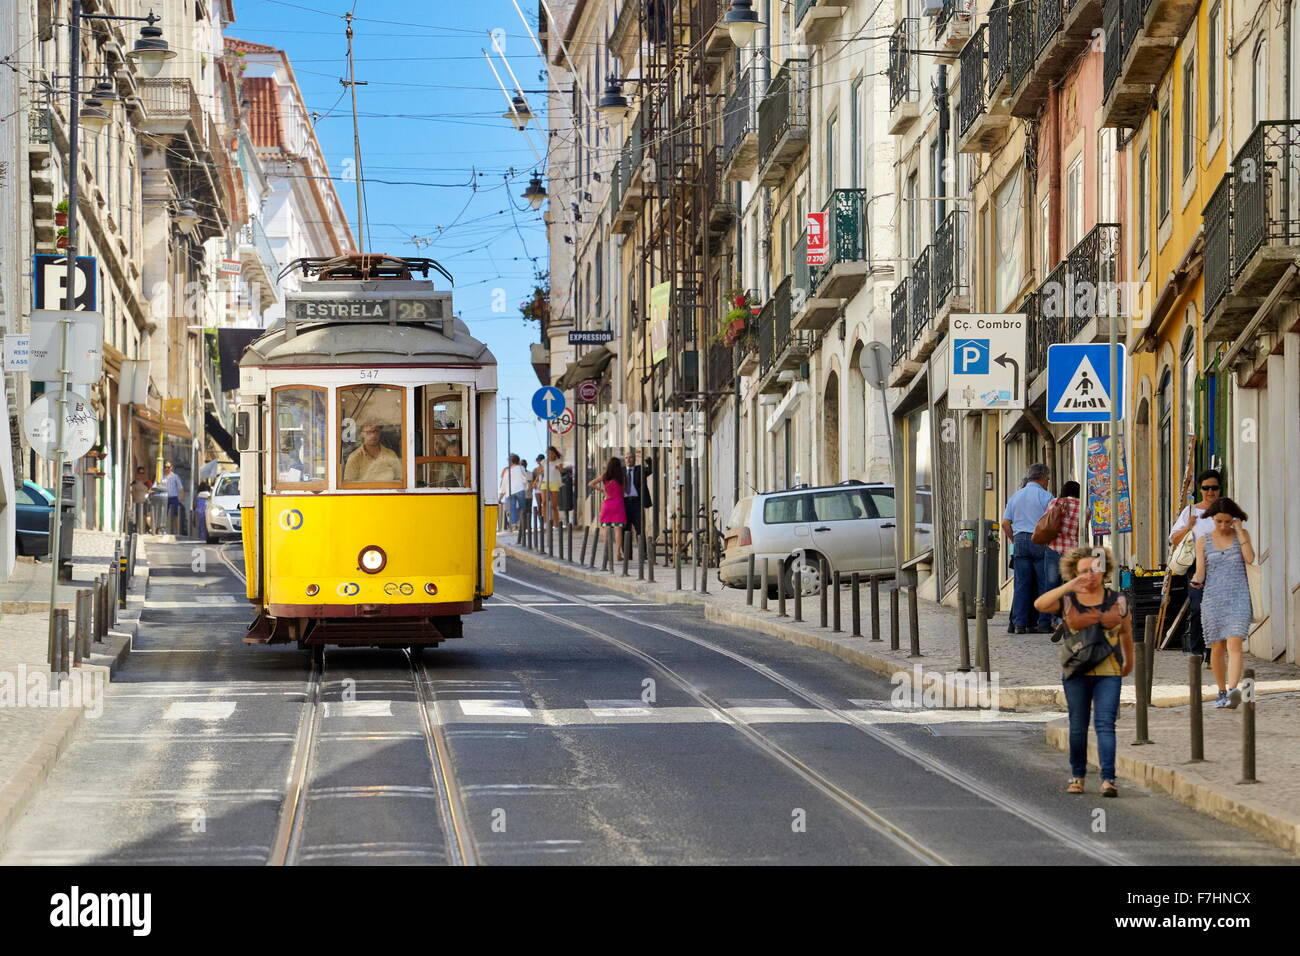 POpular transport in Lisbon - Tram 28, Portugal - Stock Image